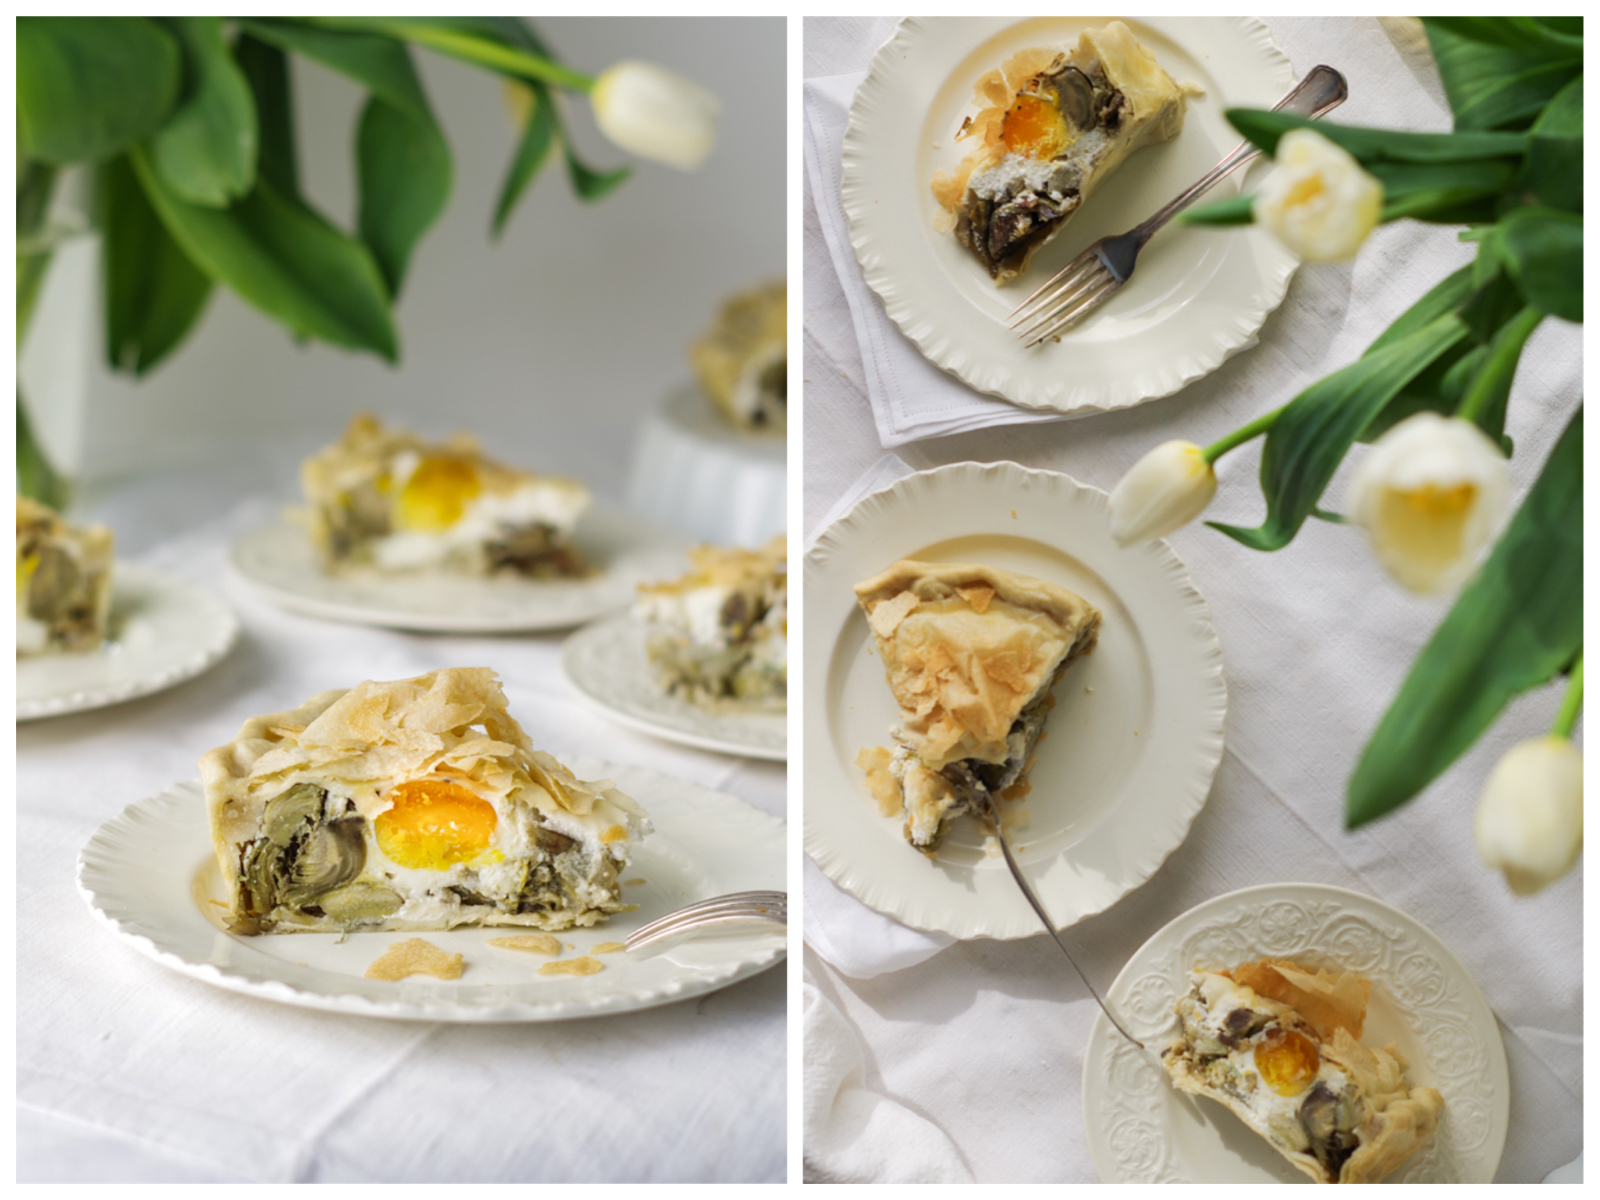 Italian Riviera artichokes pie on the table, the perfect vegetable pie for a springy lunch